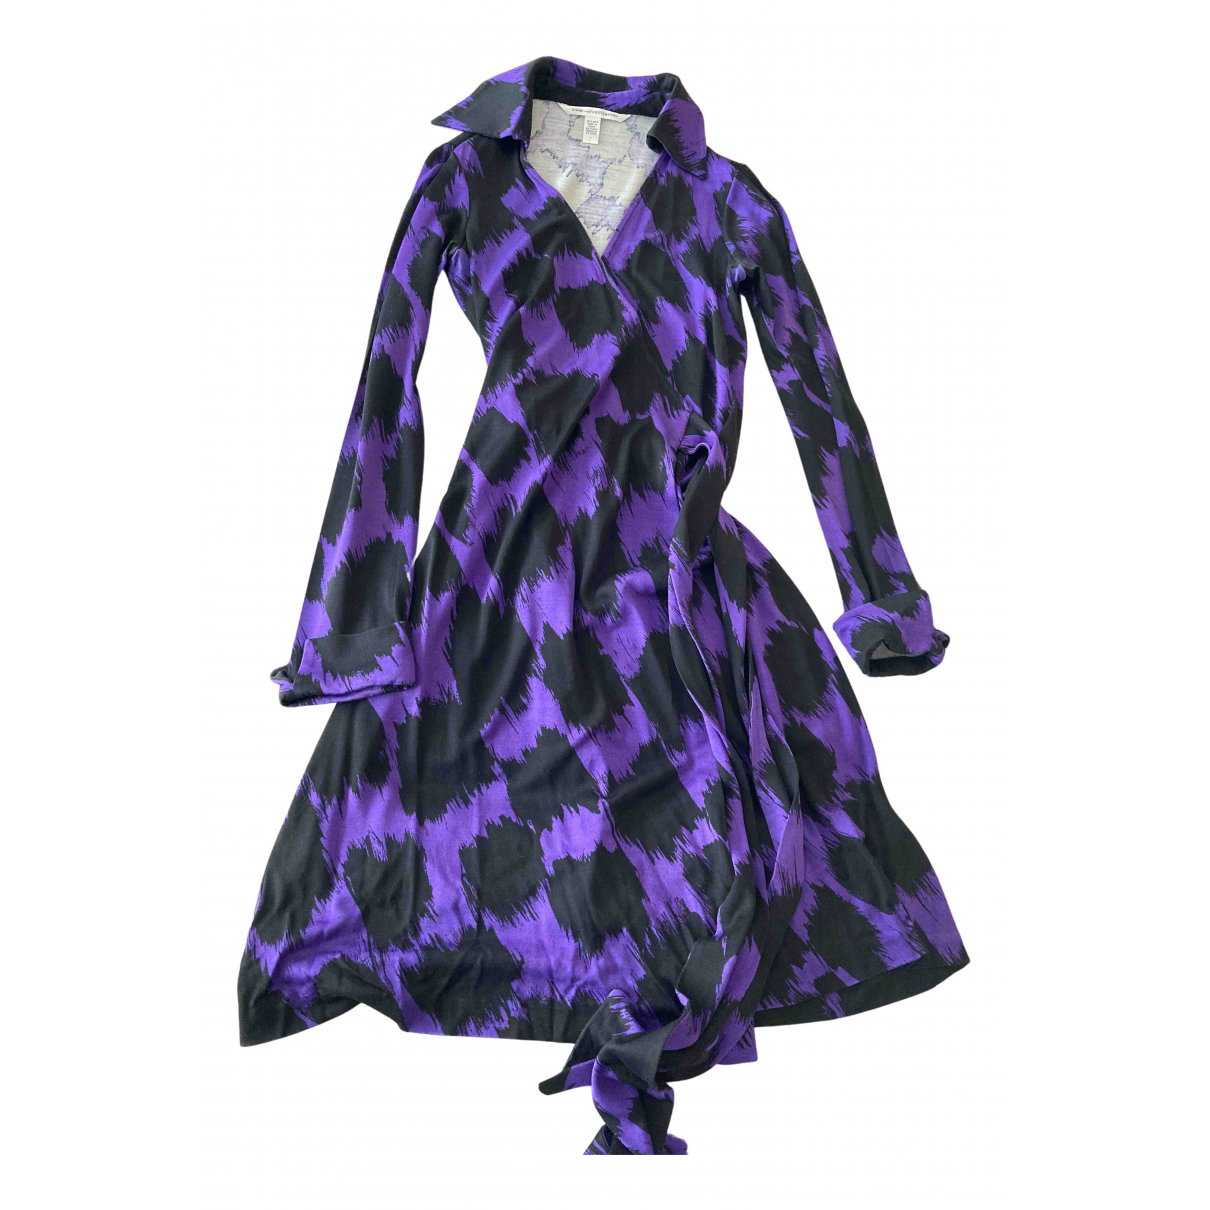 Diane Von Furstenberg N Silk dress for Women 4 US